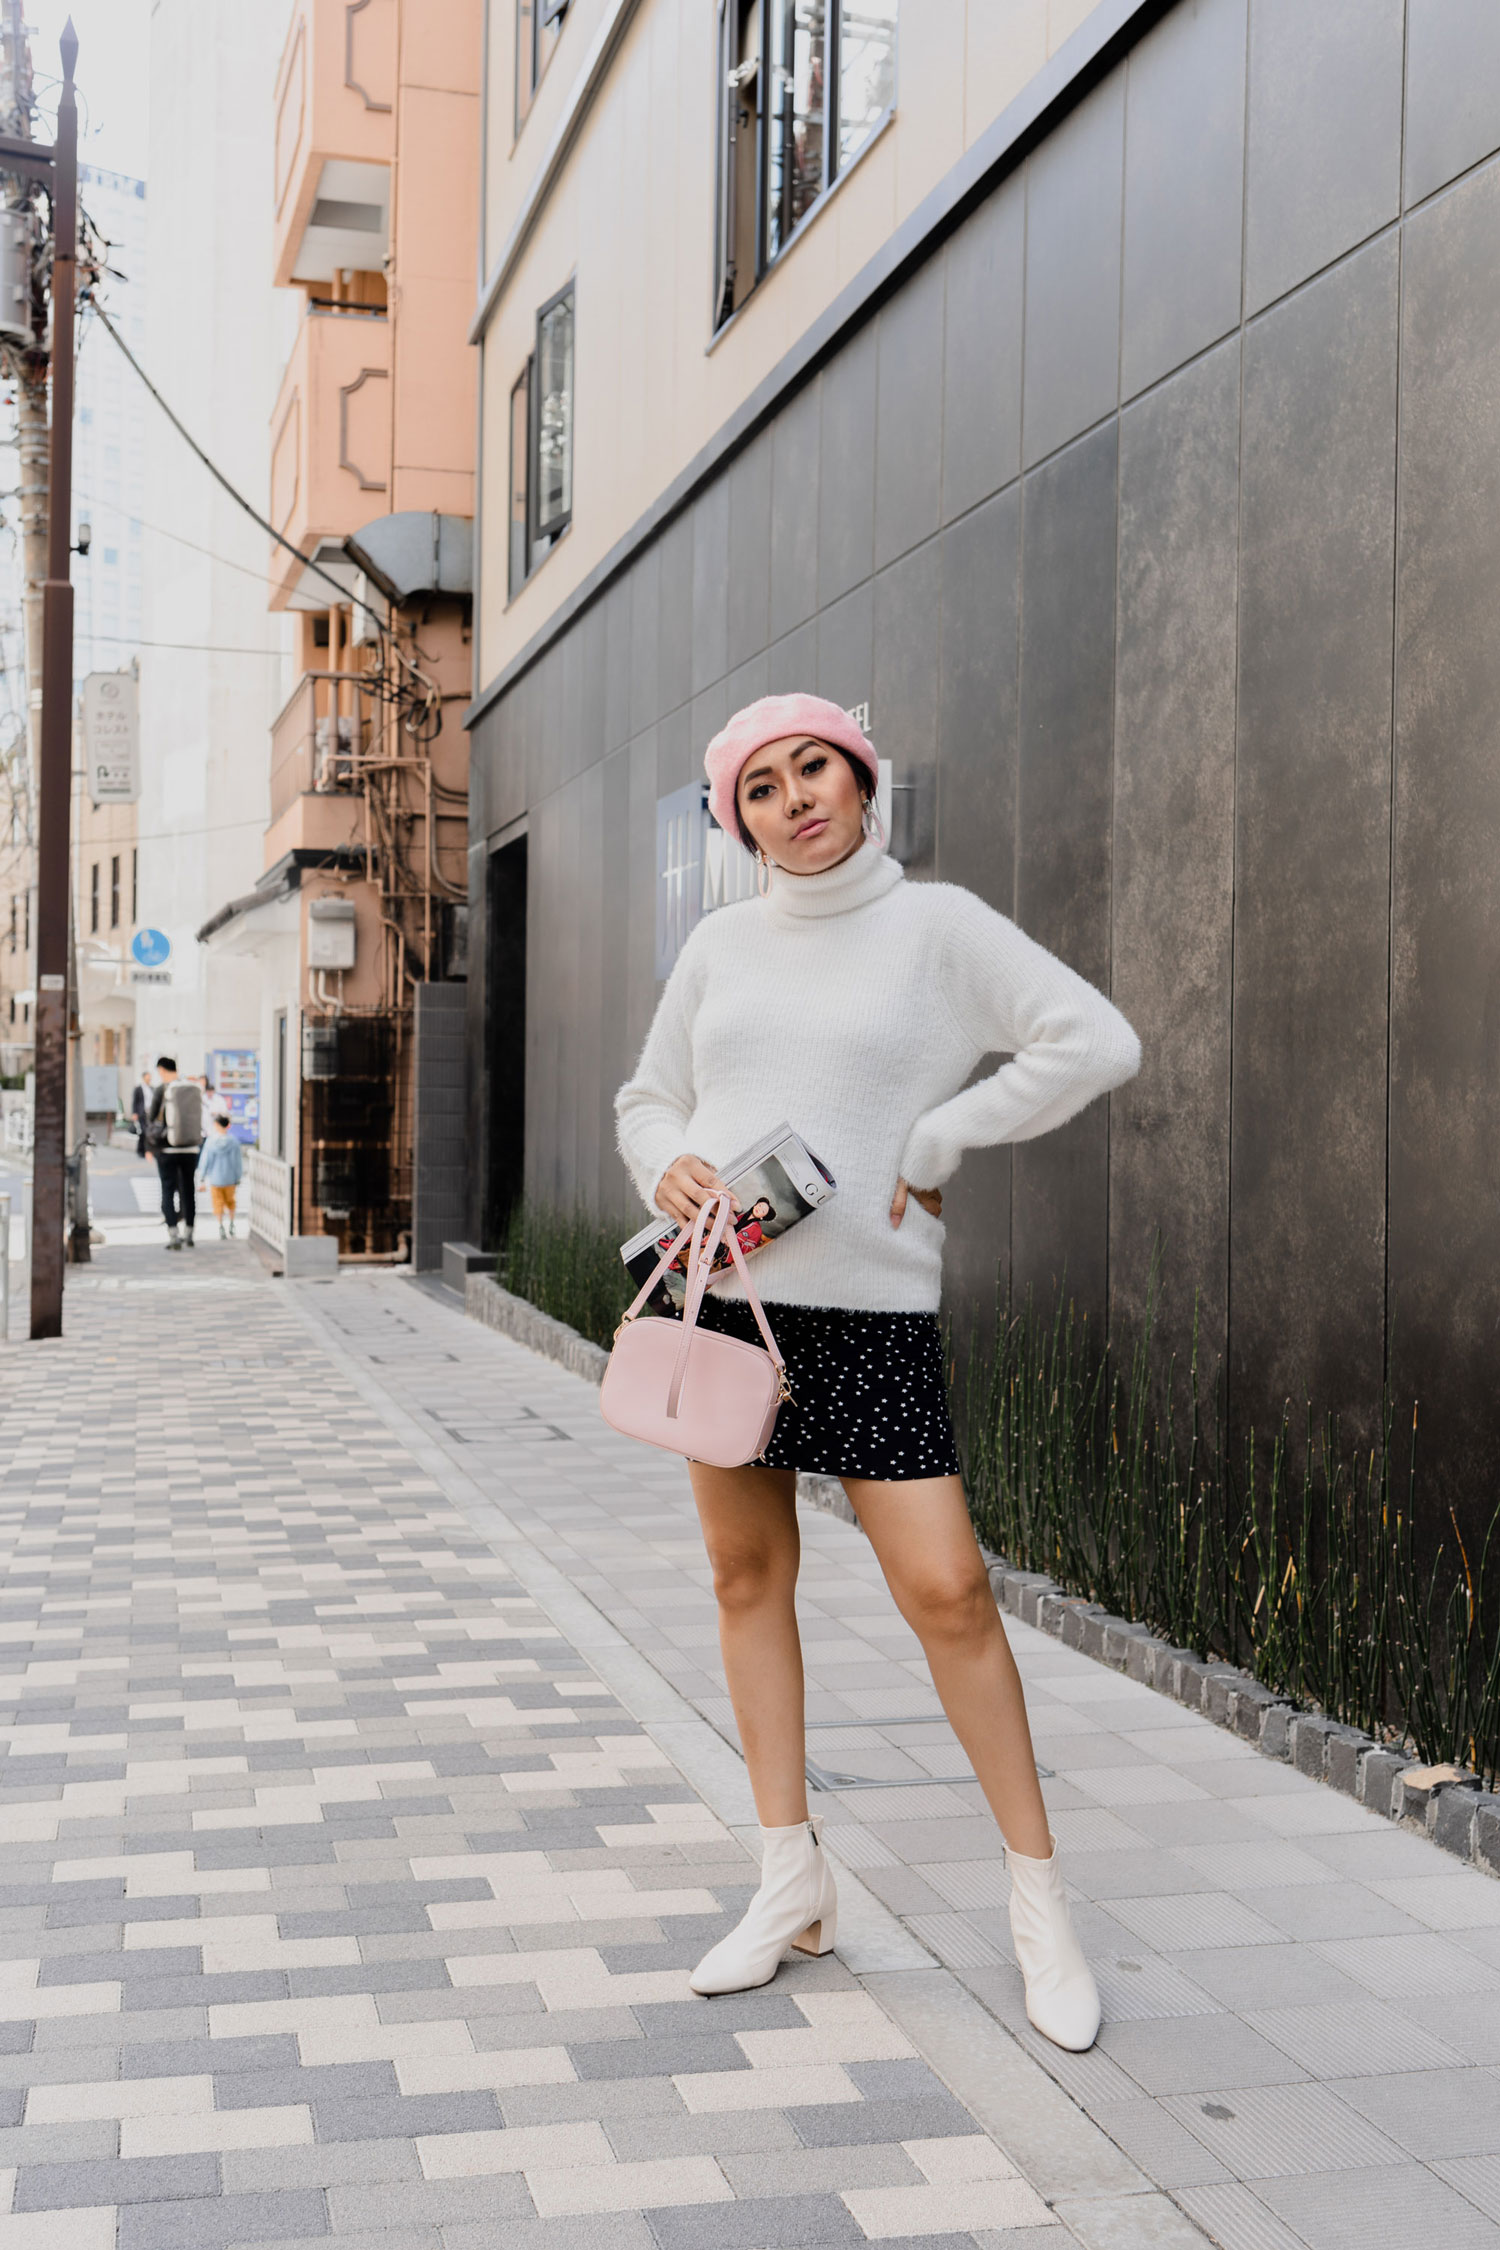 Fall/ Winter Outfit Idea | Pink Baret #GoodVibesGifting Day 6_12-22-2018_Molly Larsen IG @thevibescloset_allaboutgoodvibes.com